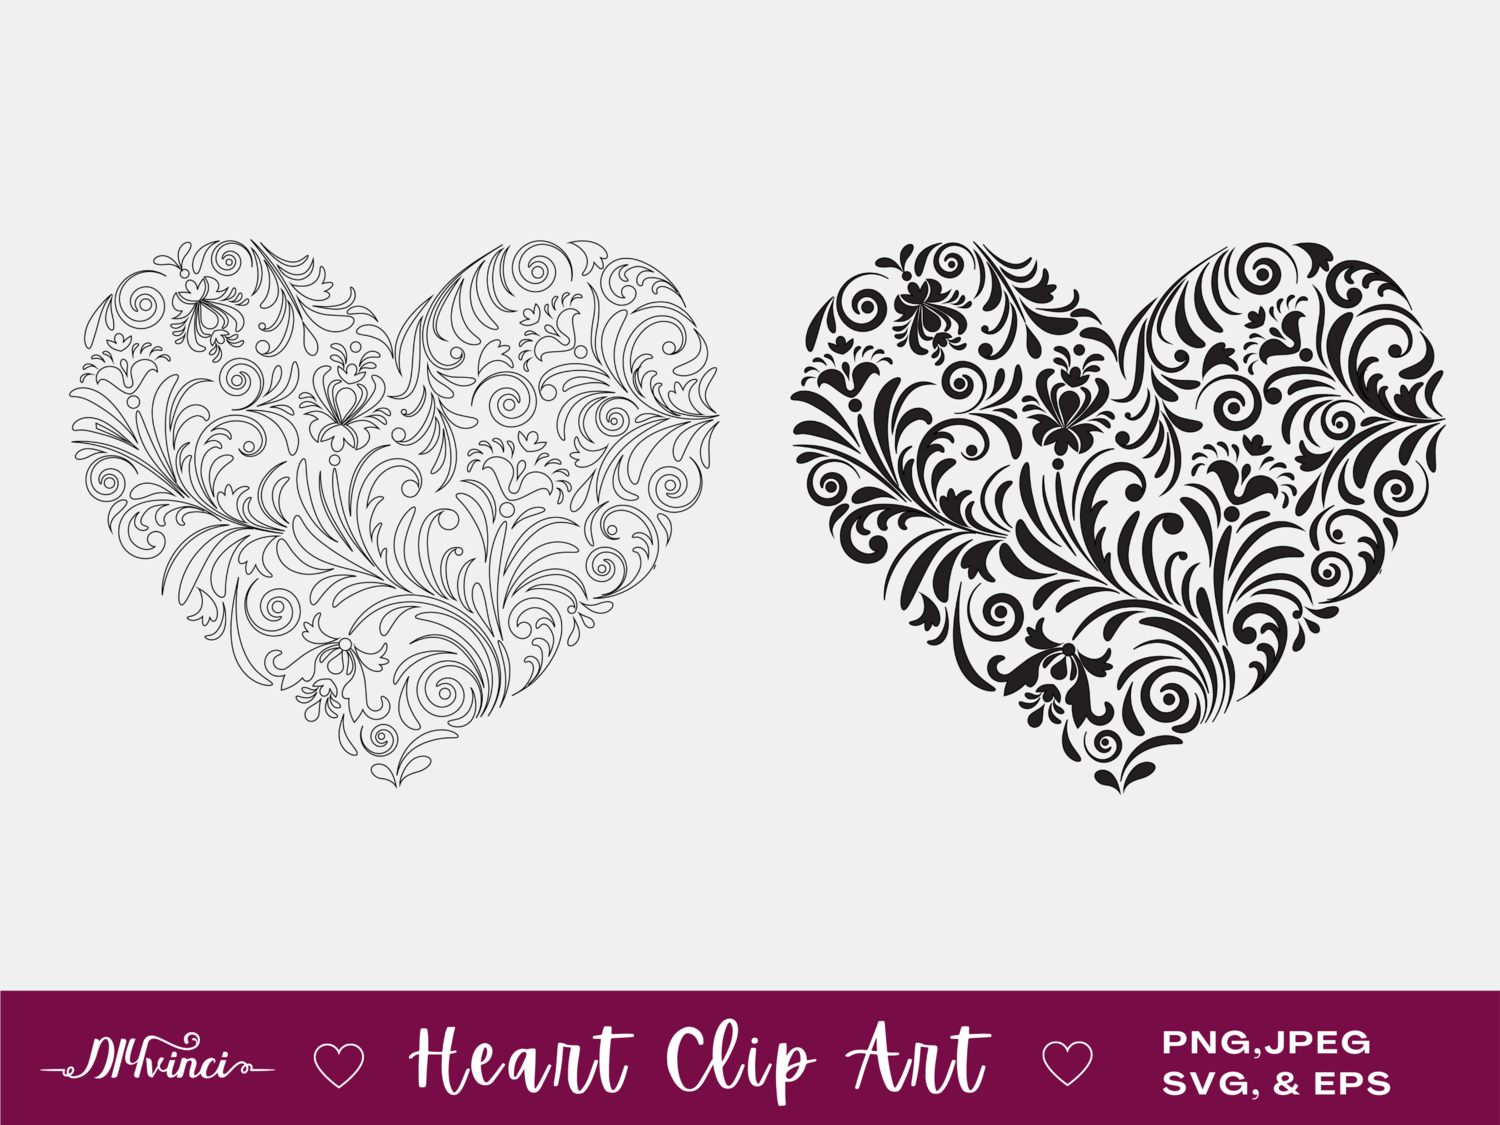 Heart Clip Art - jpeg, PNG, SVG, EPS - Personal & Commercial Use